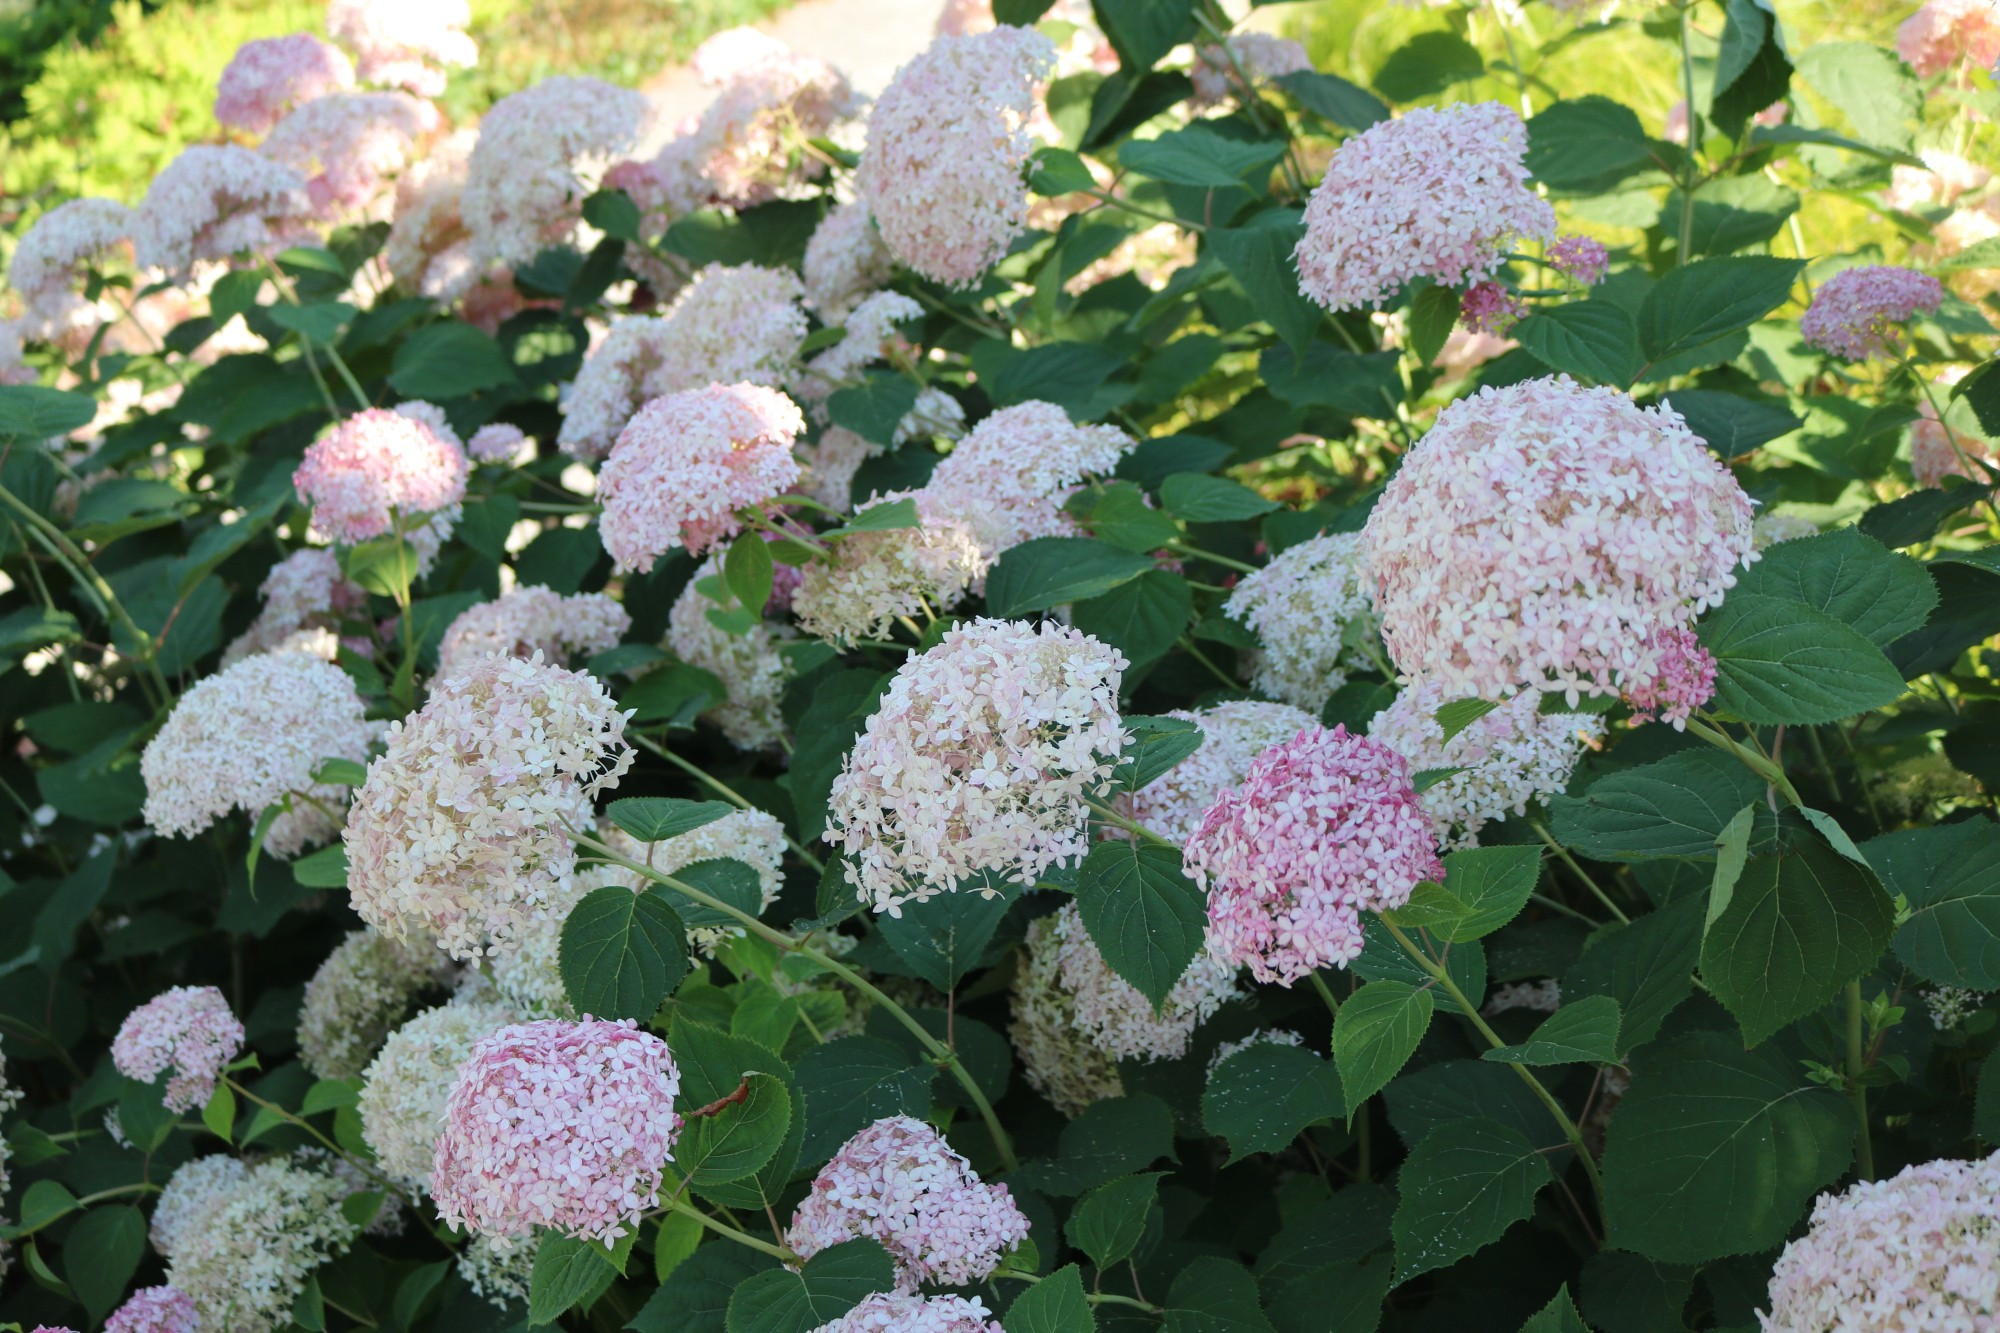 Hydrangea arborescens 'NCHA1' (Invincibelle Spirit smooth hydrangea) flowering in the Hillside Garden, July 2017. Photo by Leslie Hunter.